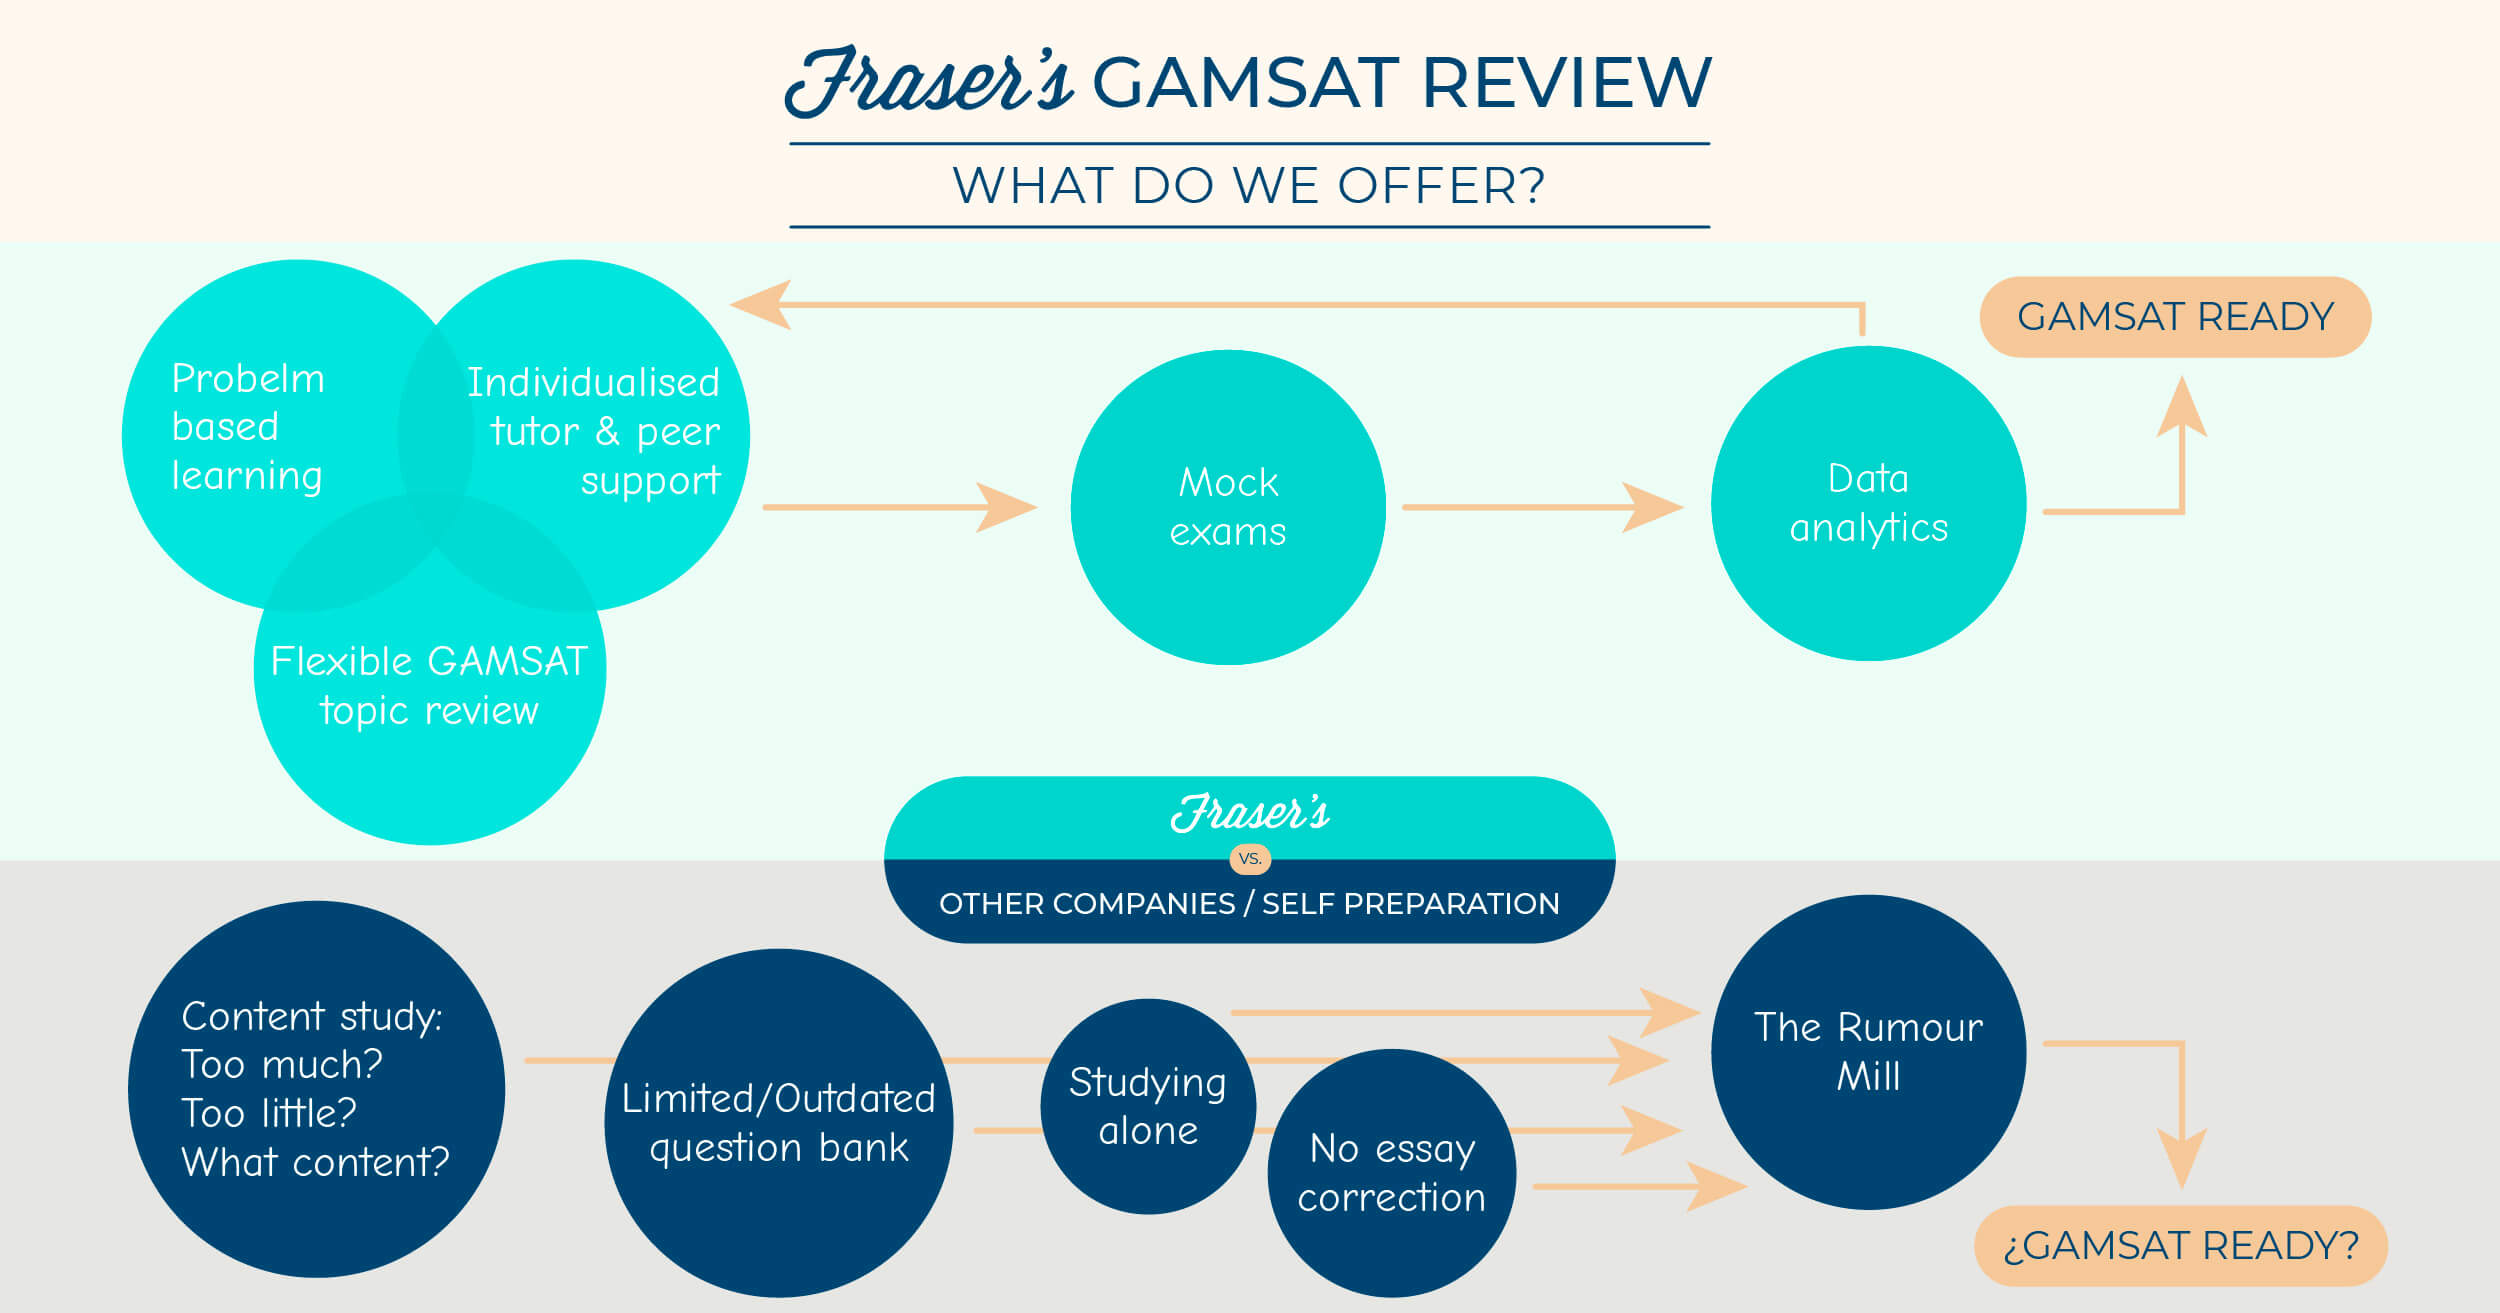 frasers gamsat review